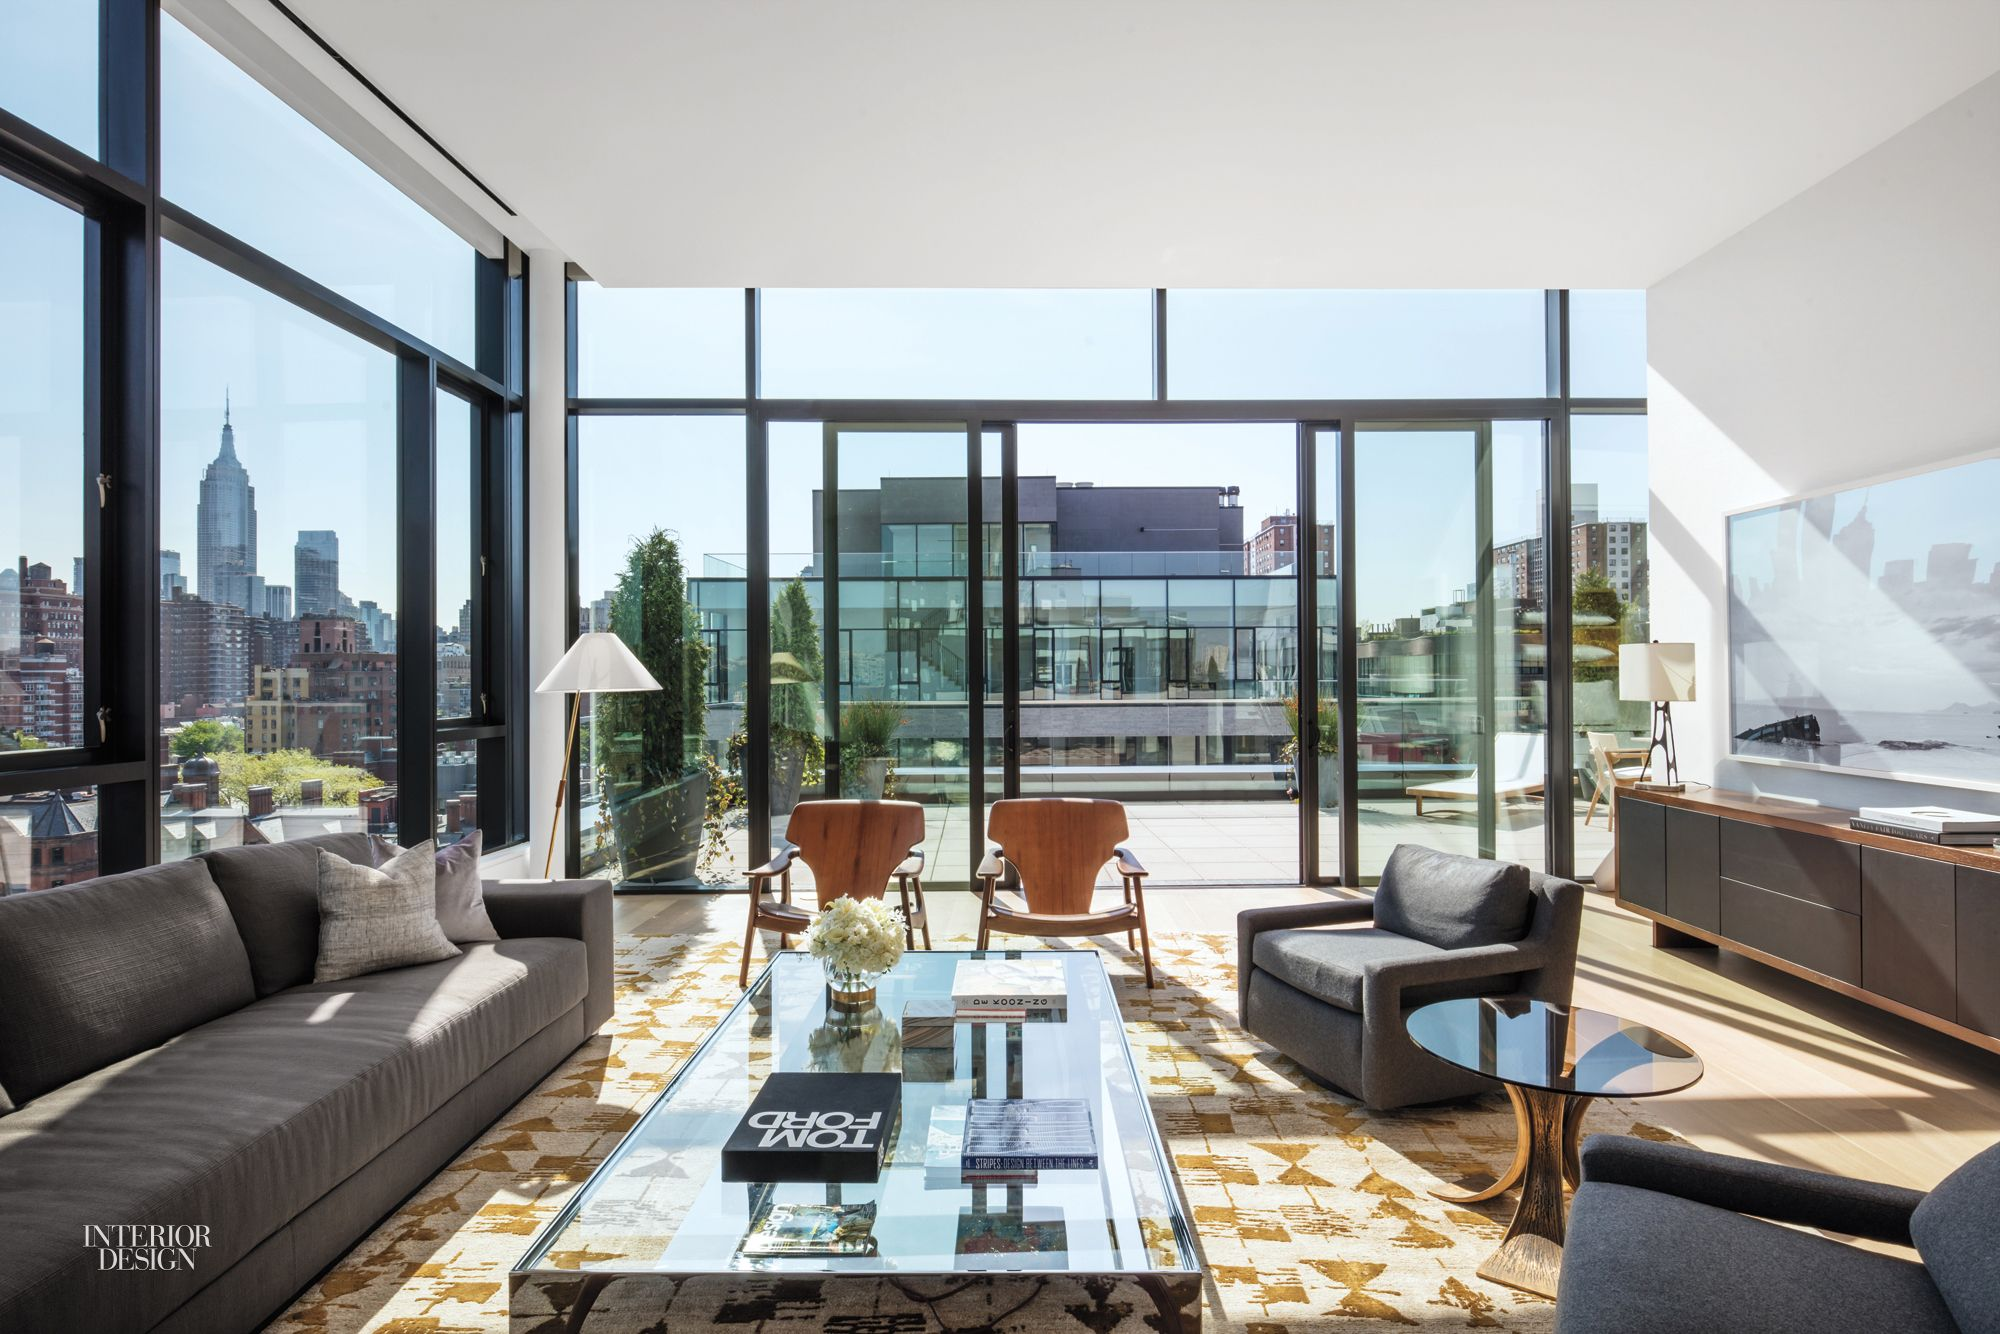 4 Model Apartments Show Off NYC's Hottest Residential ...